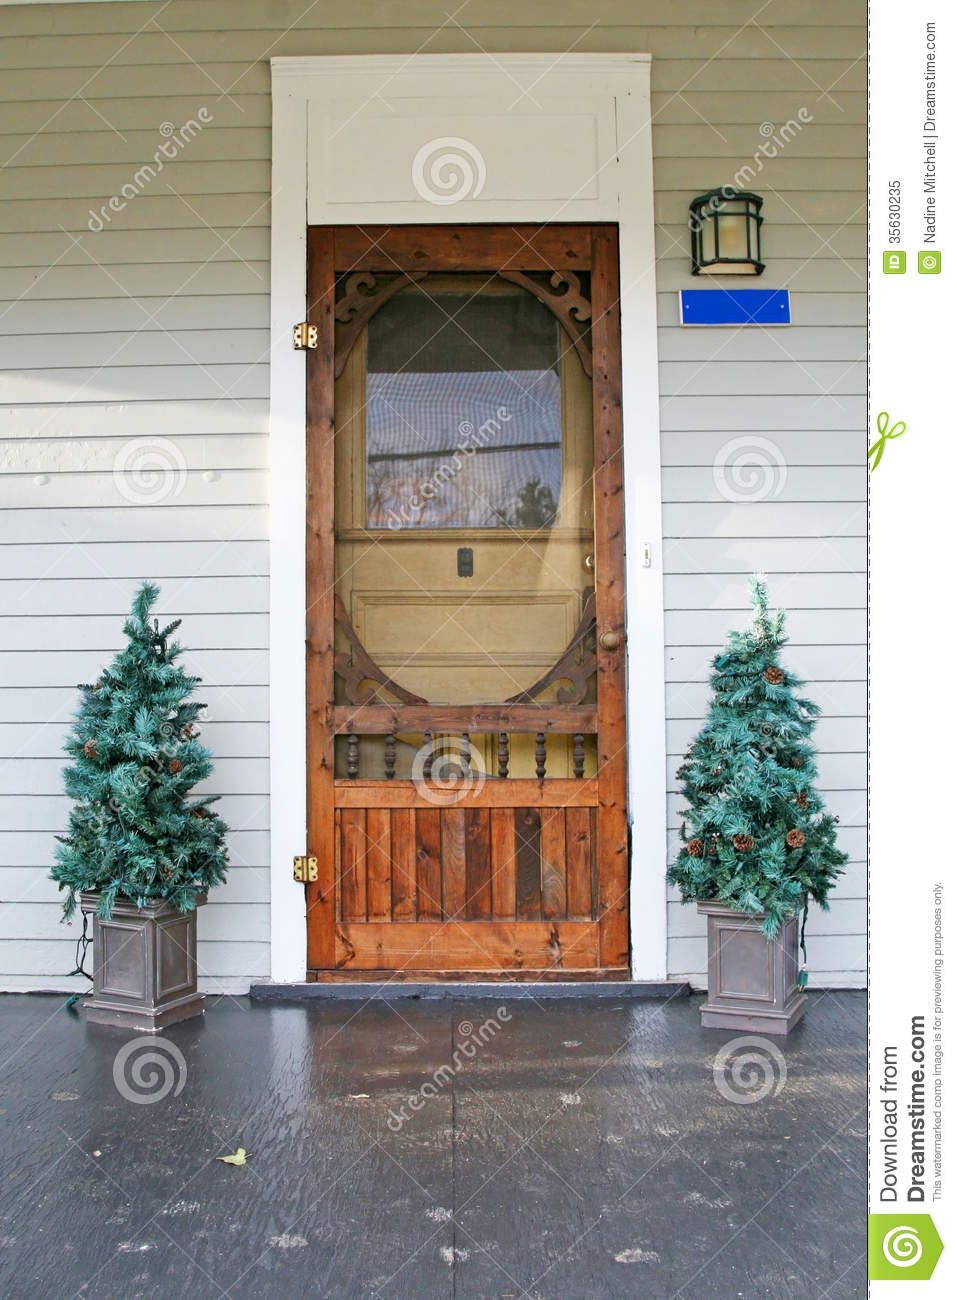 Old Country Door With 2 Christmas Trees On Each Side Stock Image